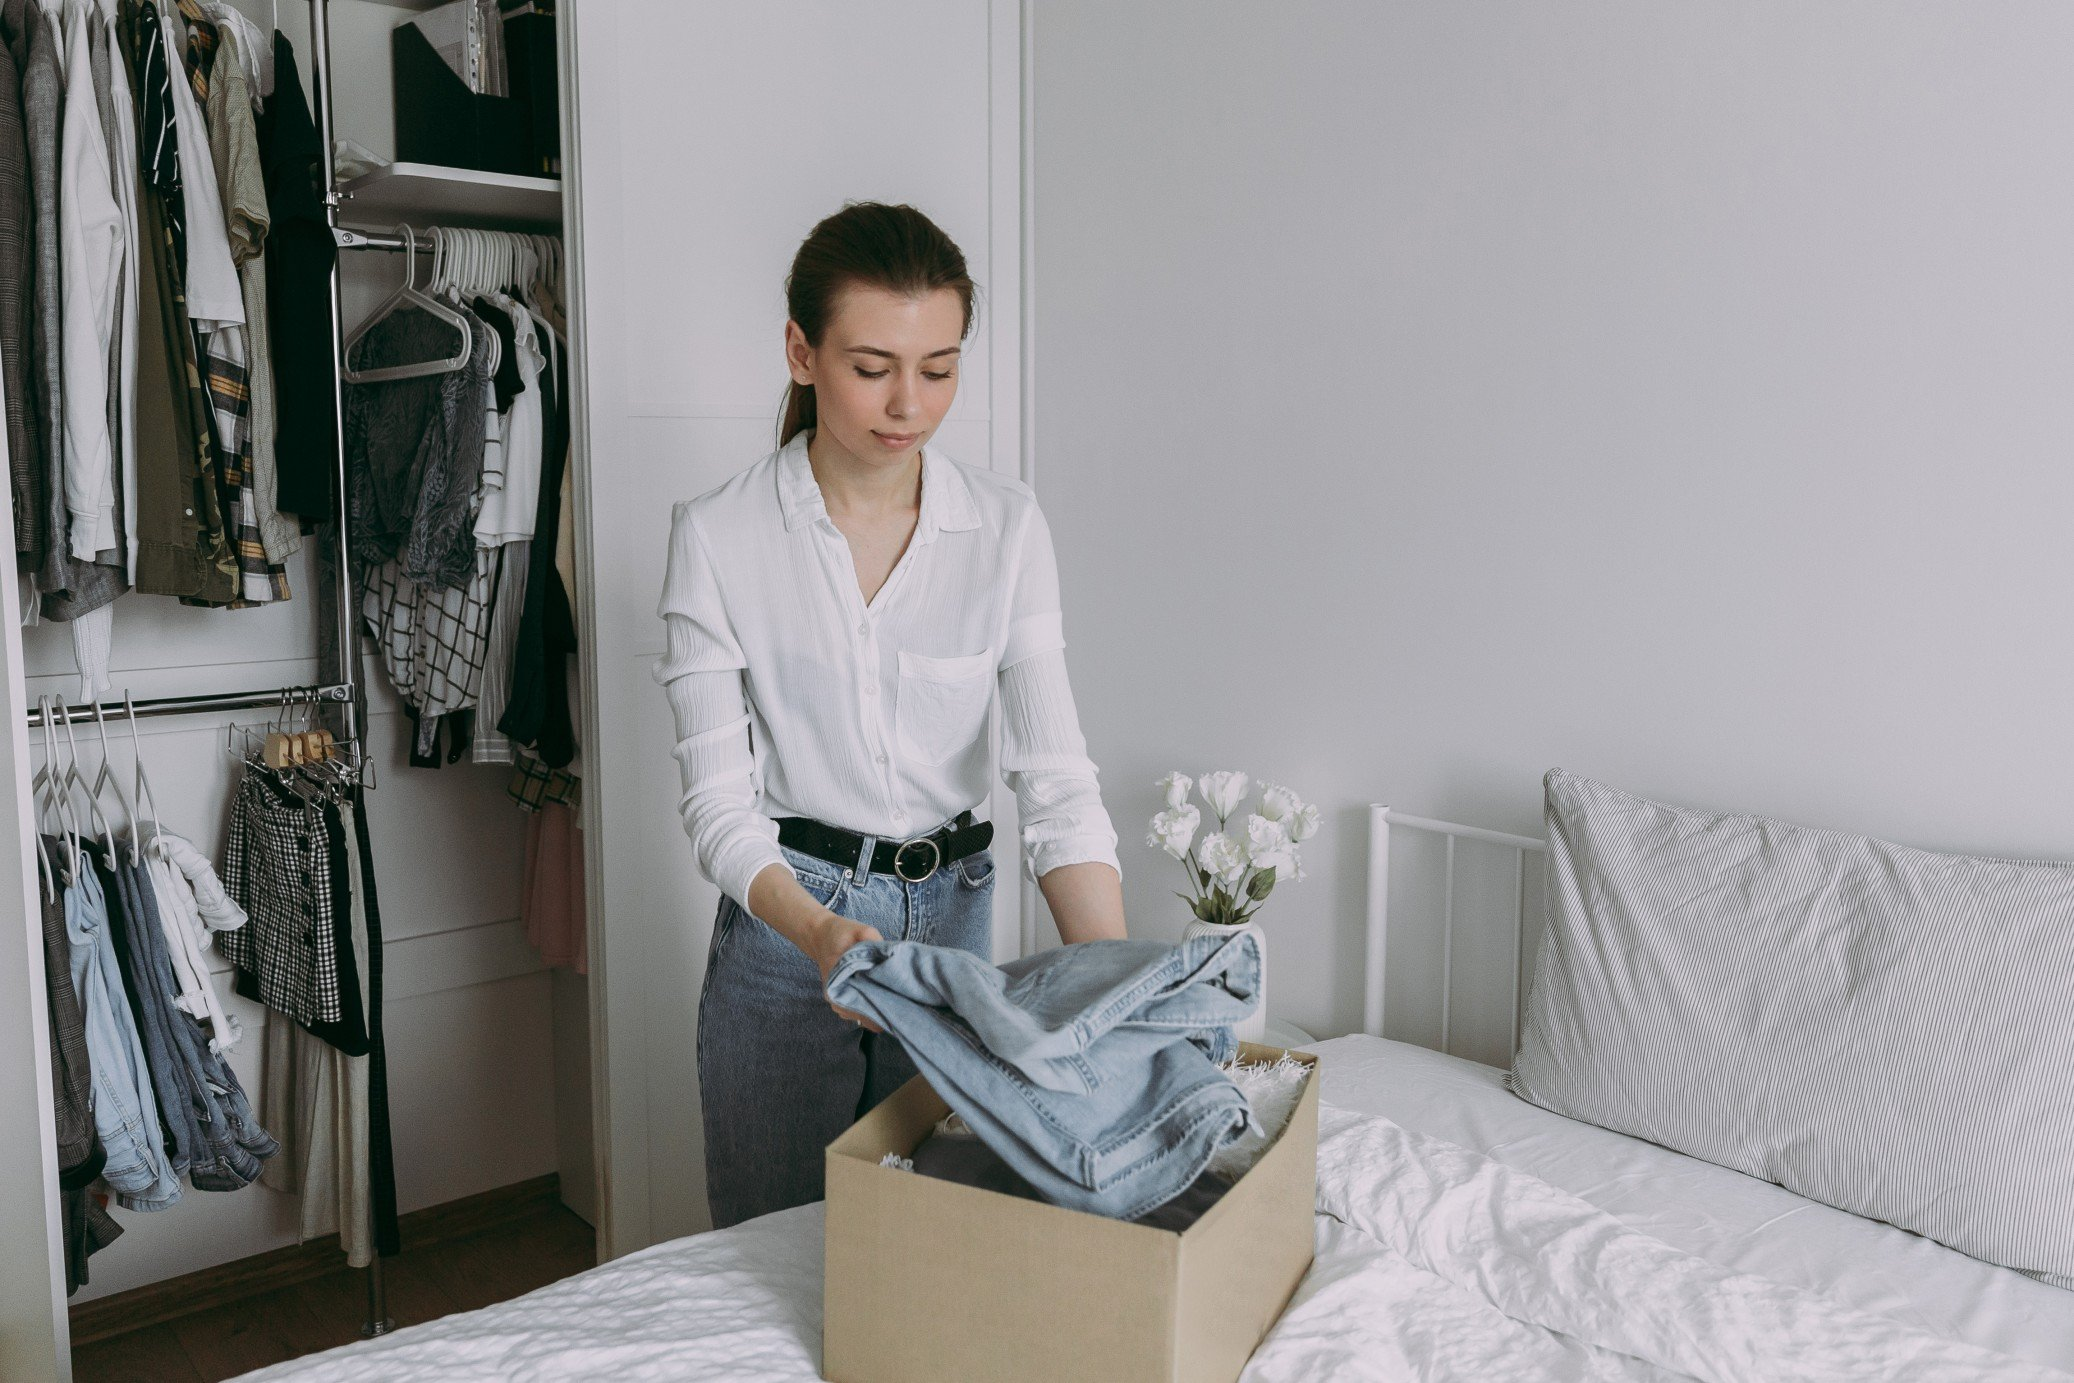 a-young-girl-near-the-wardrobe-sorts-clothes-and-donates-clothes-to-charity-the-girl-takes-things-for_t20_rLeL8J